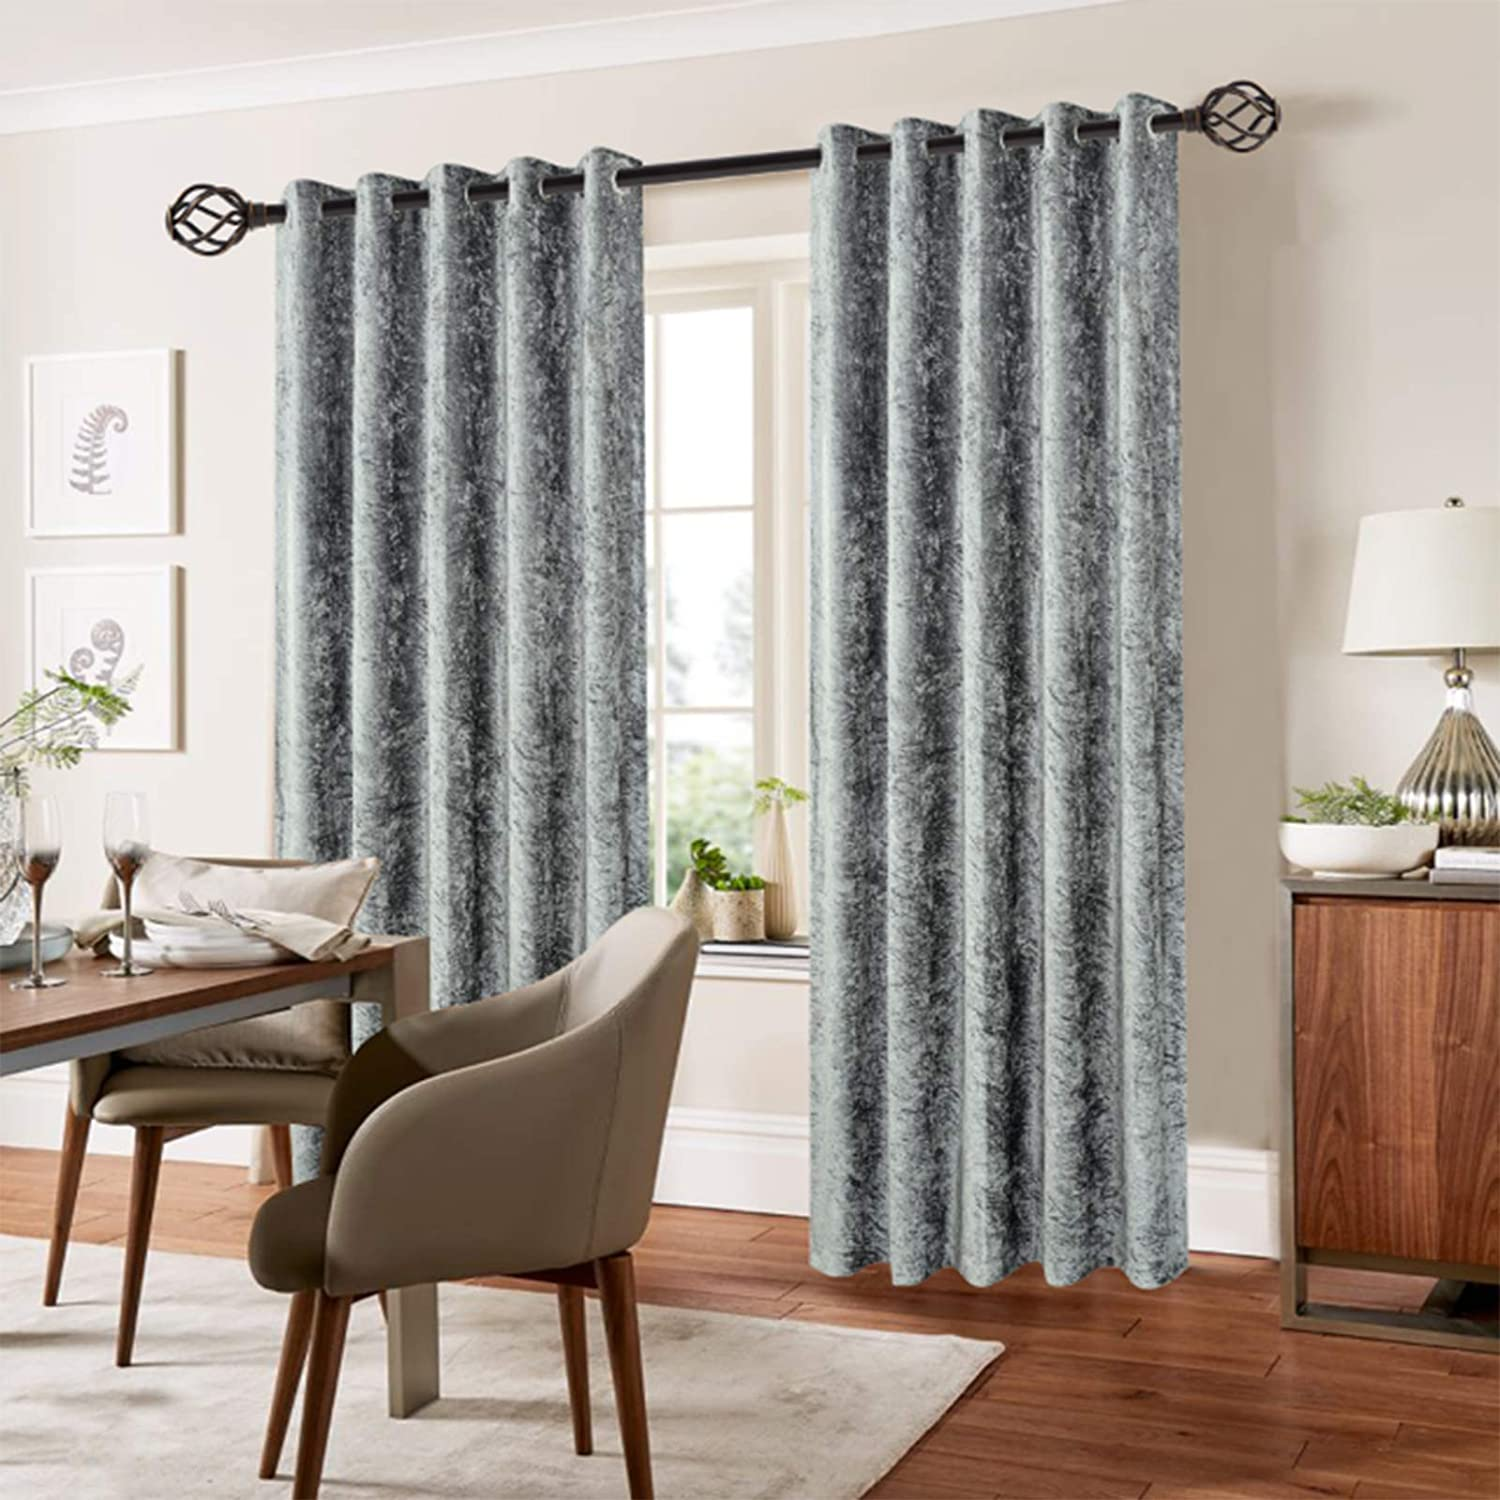 Bliss Home Living CRUSHED VELVET CURTAIN READYMADE FULLY LINED EYELET RING TOP HEADER CURTAINS (Natural, 46